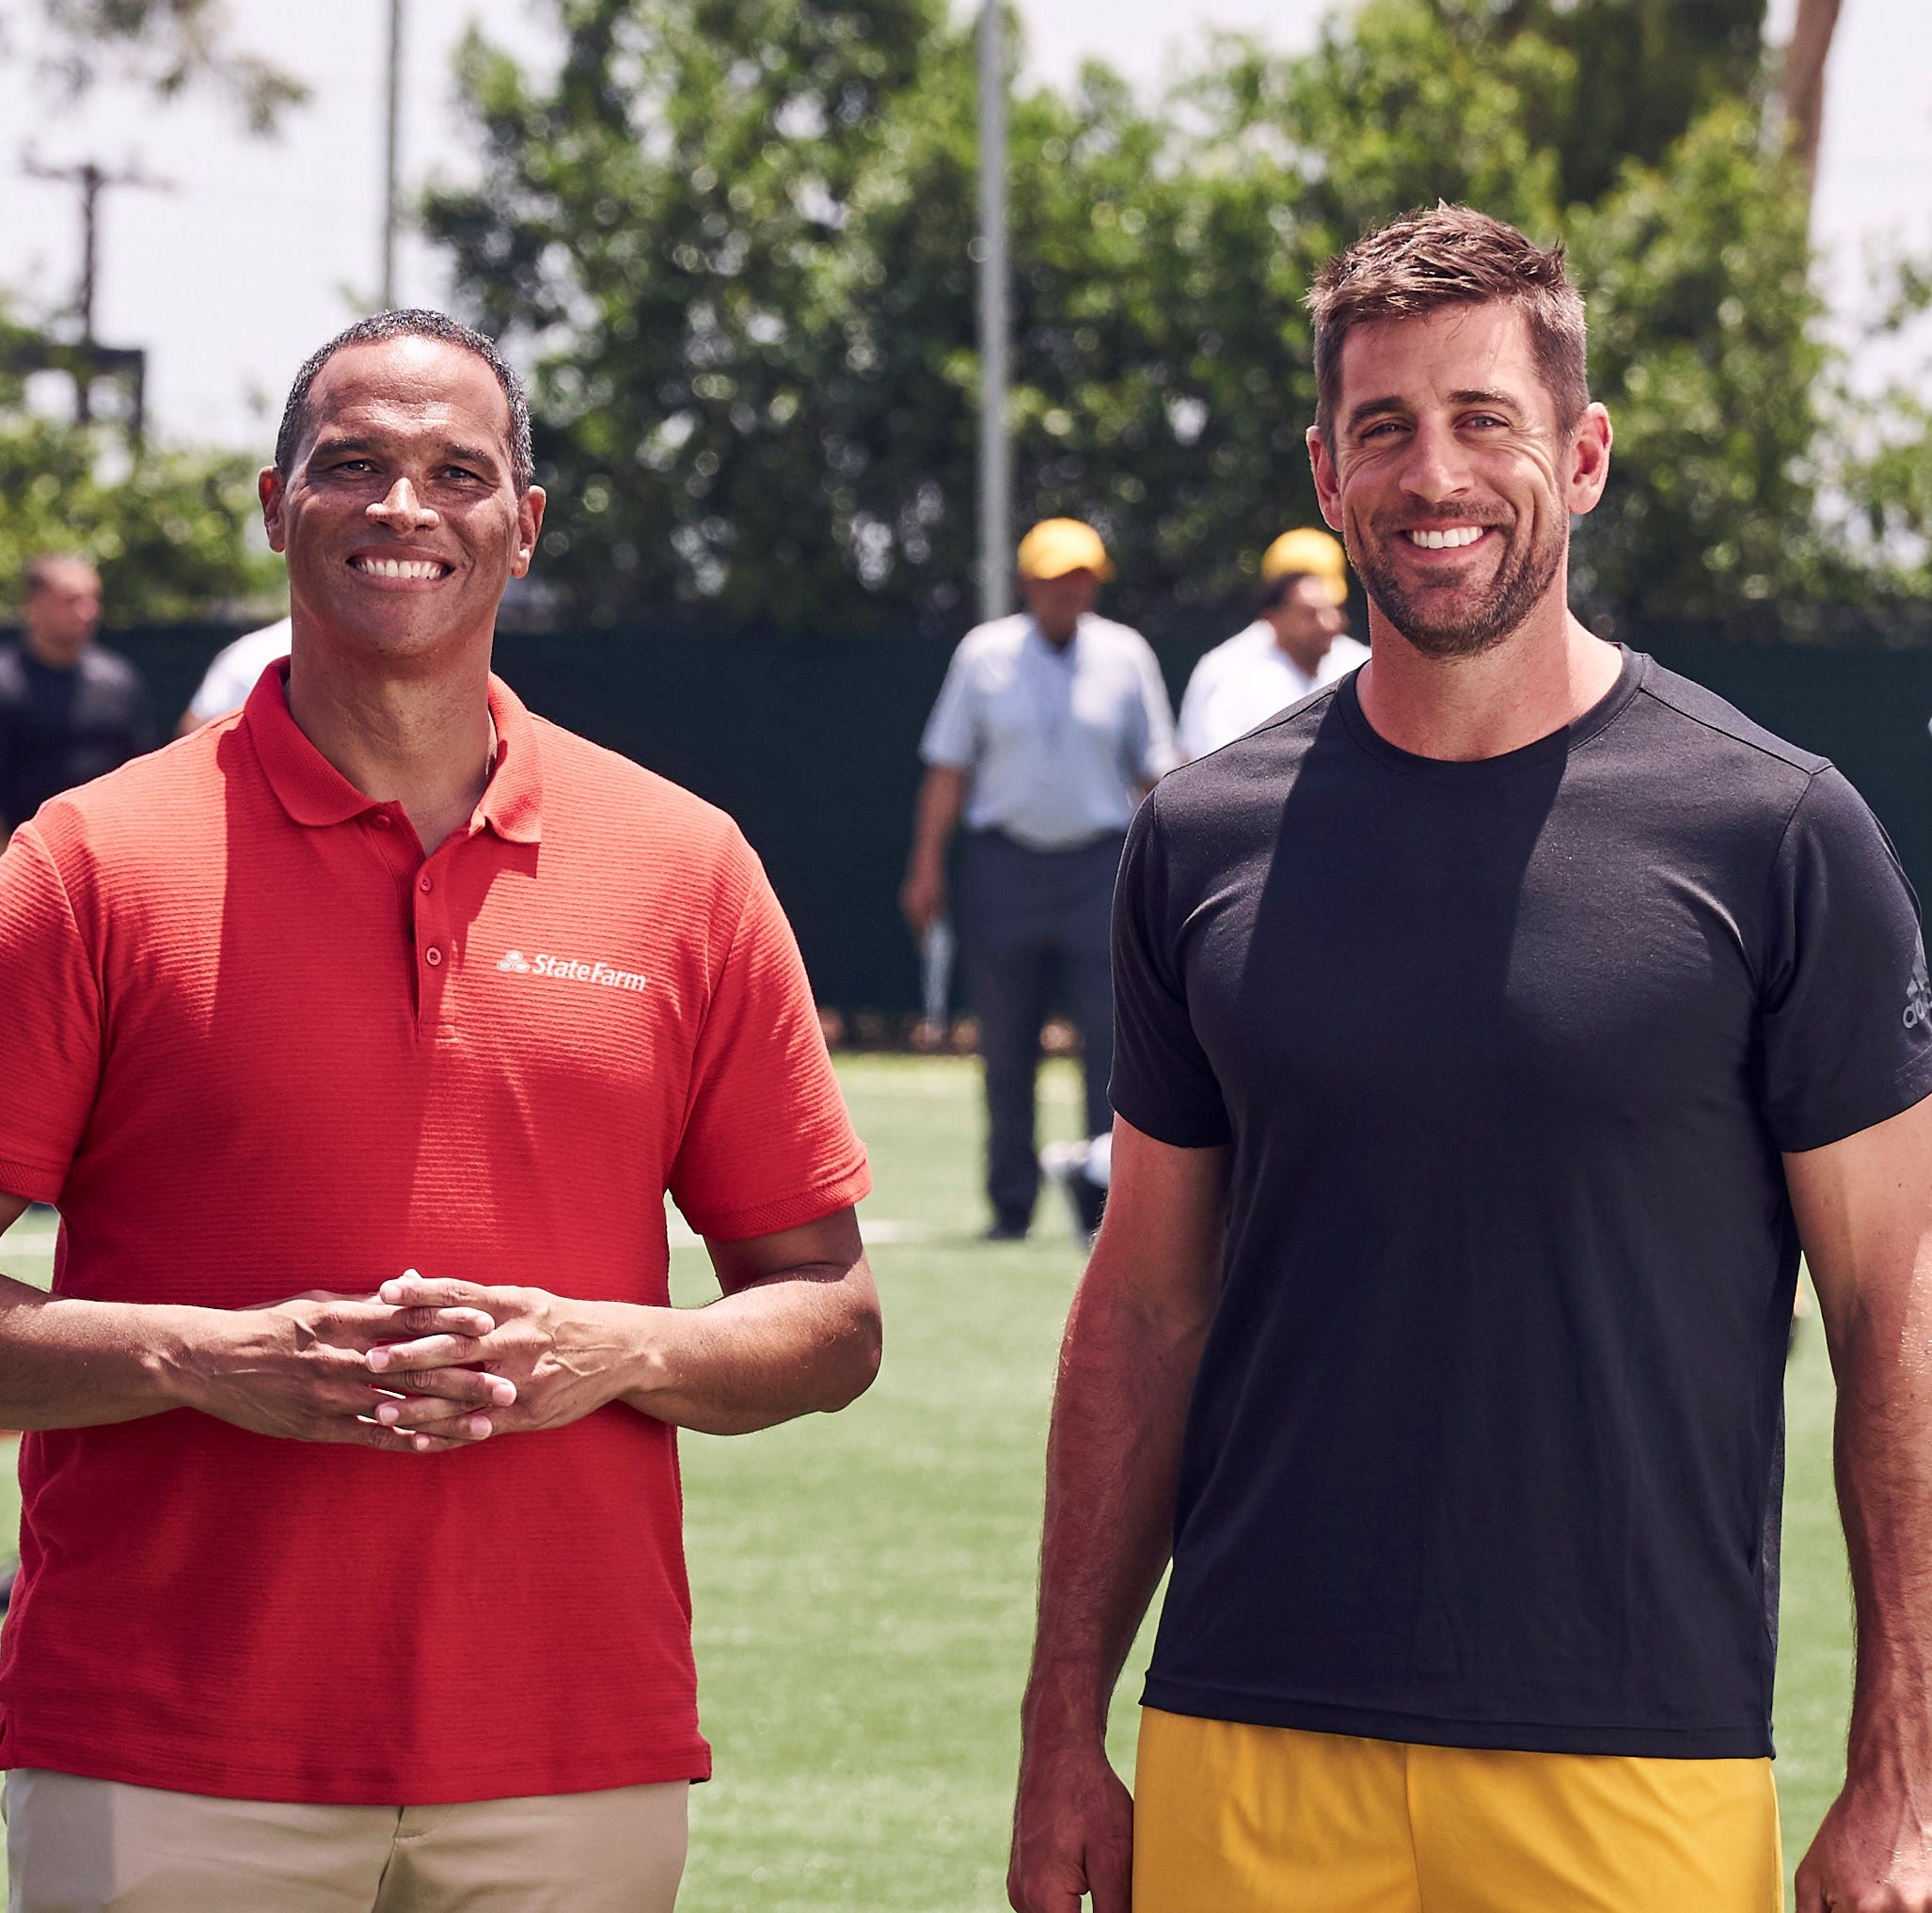 KATC sports alum stars in State Farm ad with Aaron Rodgers